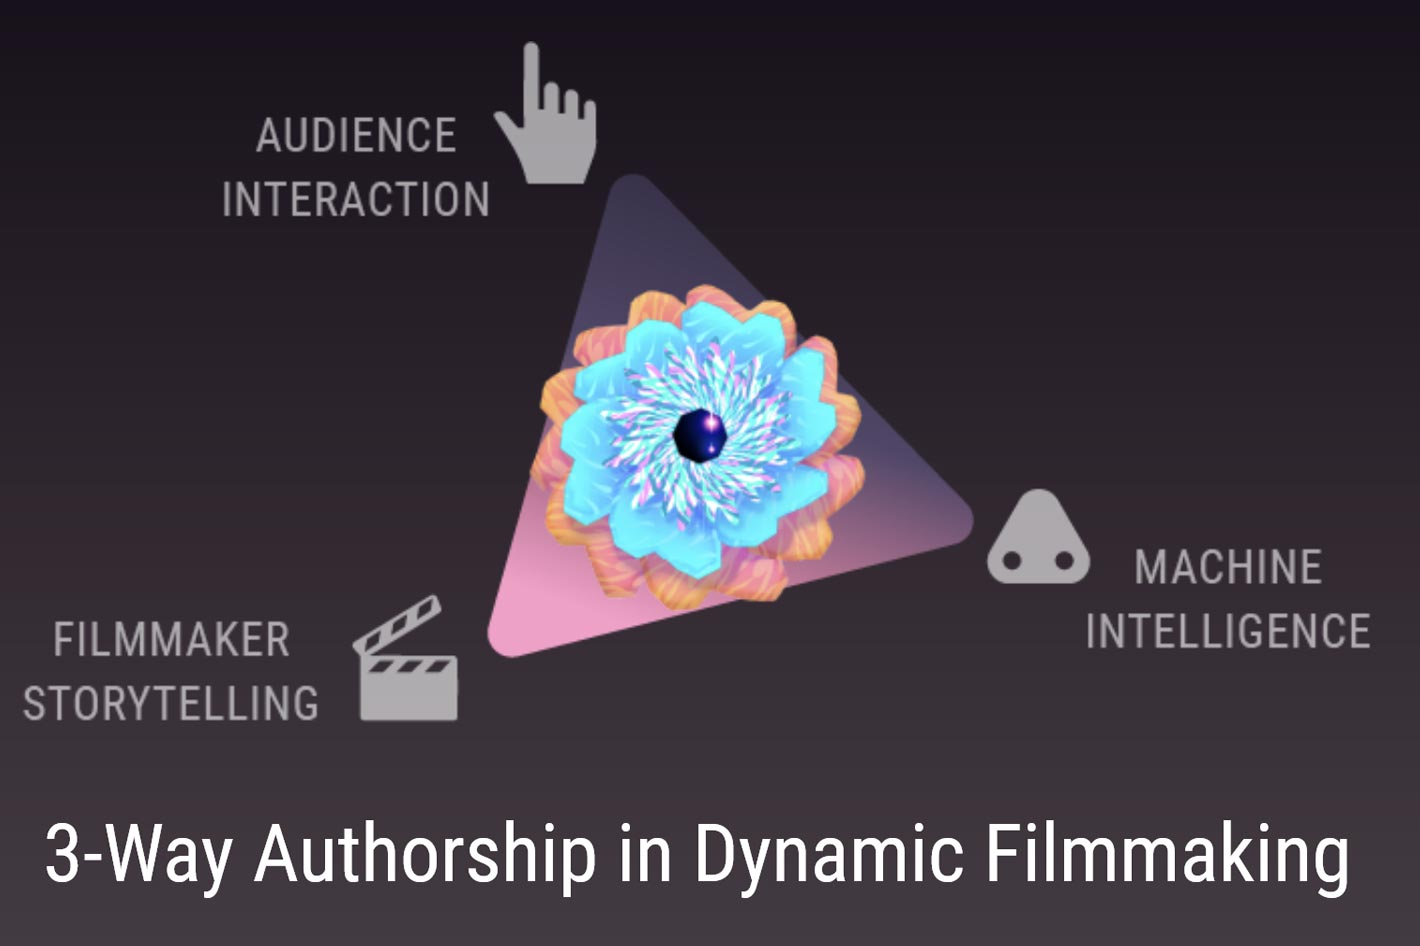 Agence: cinematic storytelling with artificial intelligence